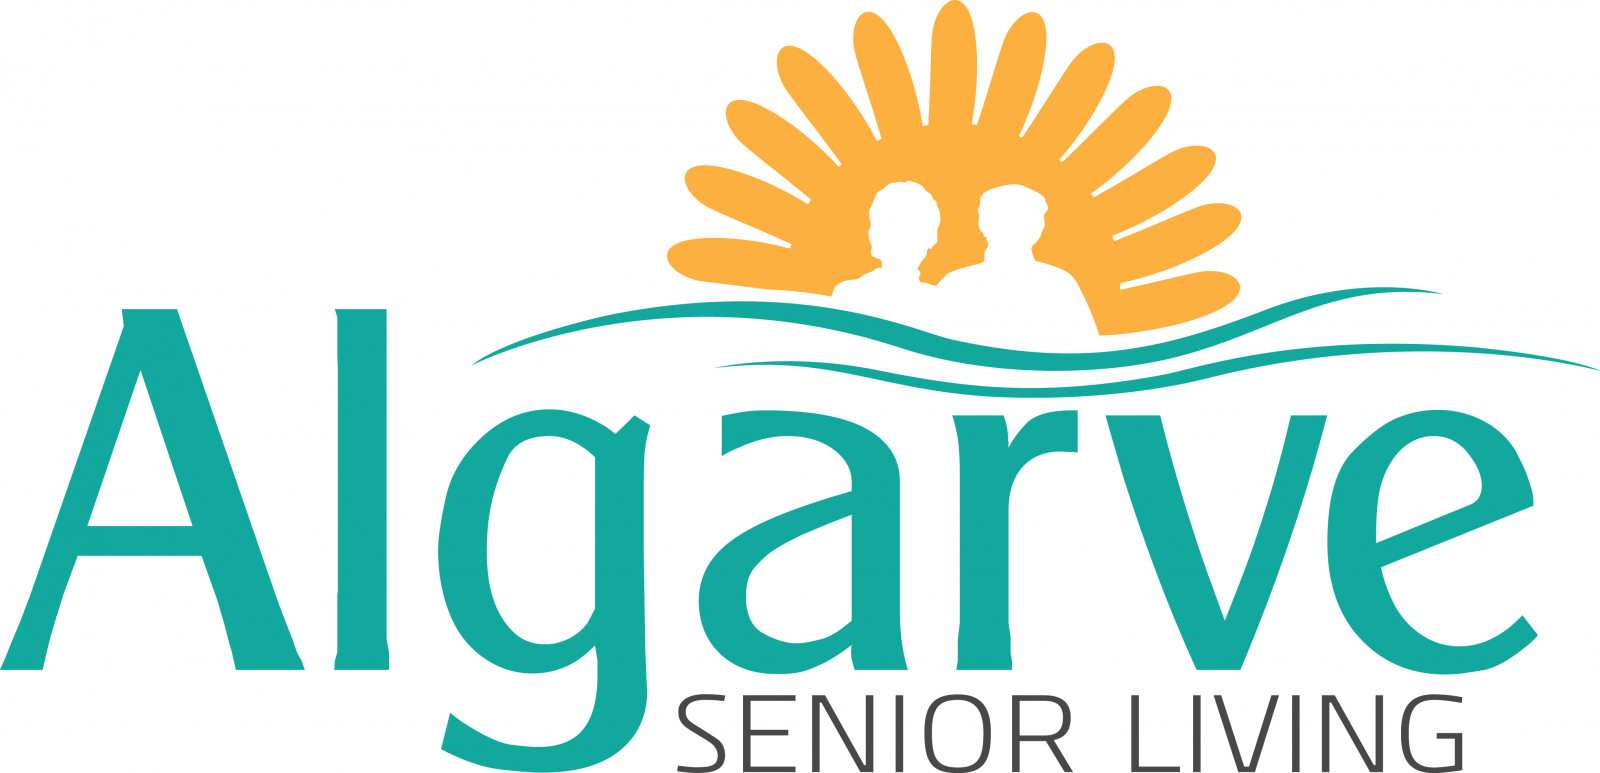 Algarve Senior Living